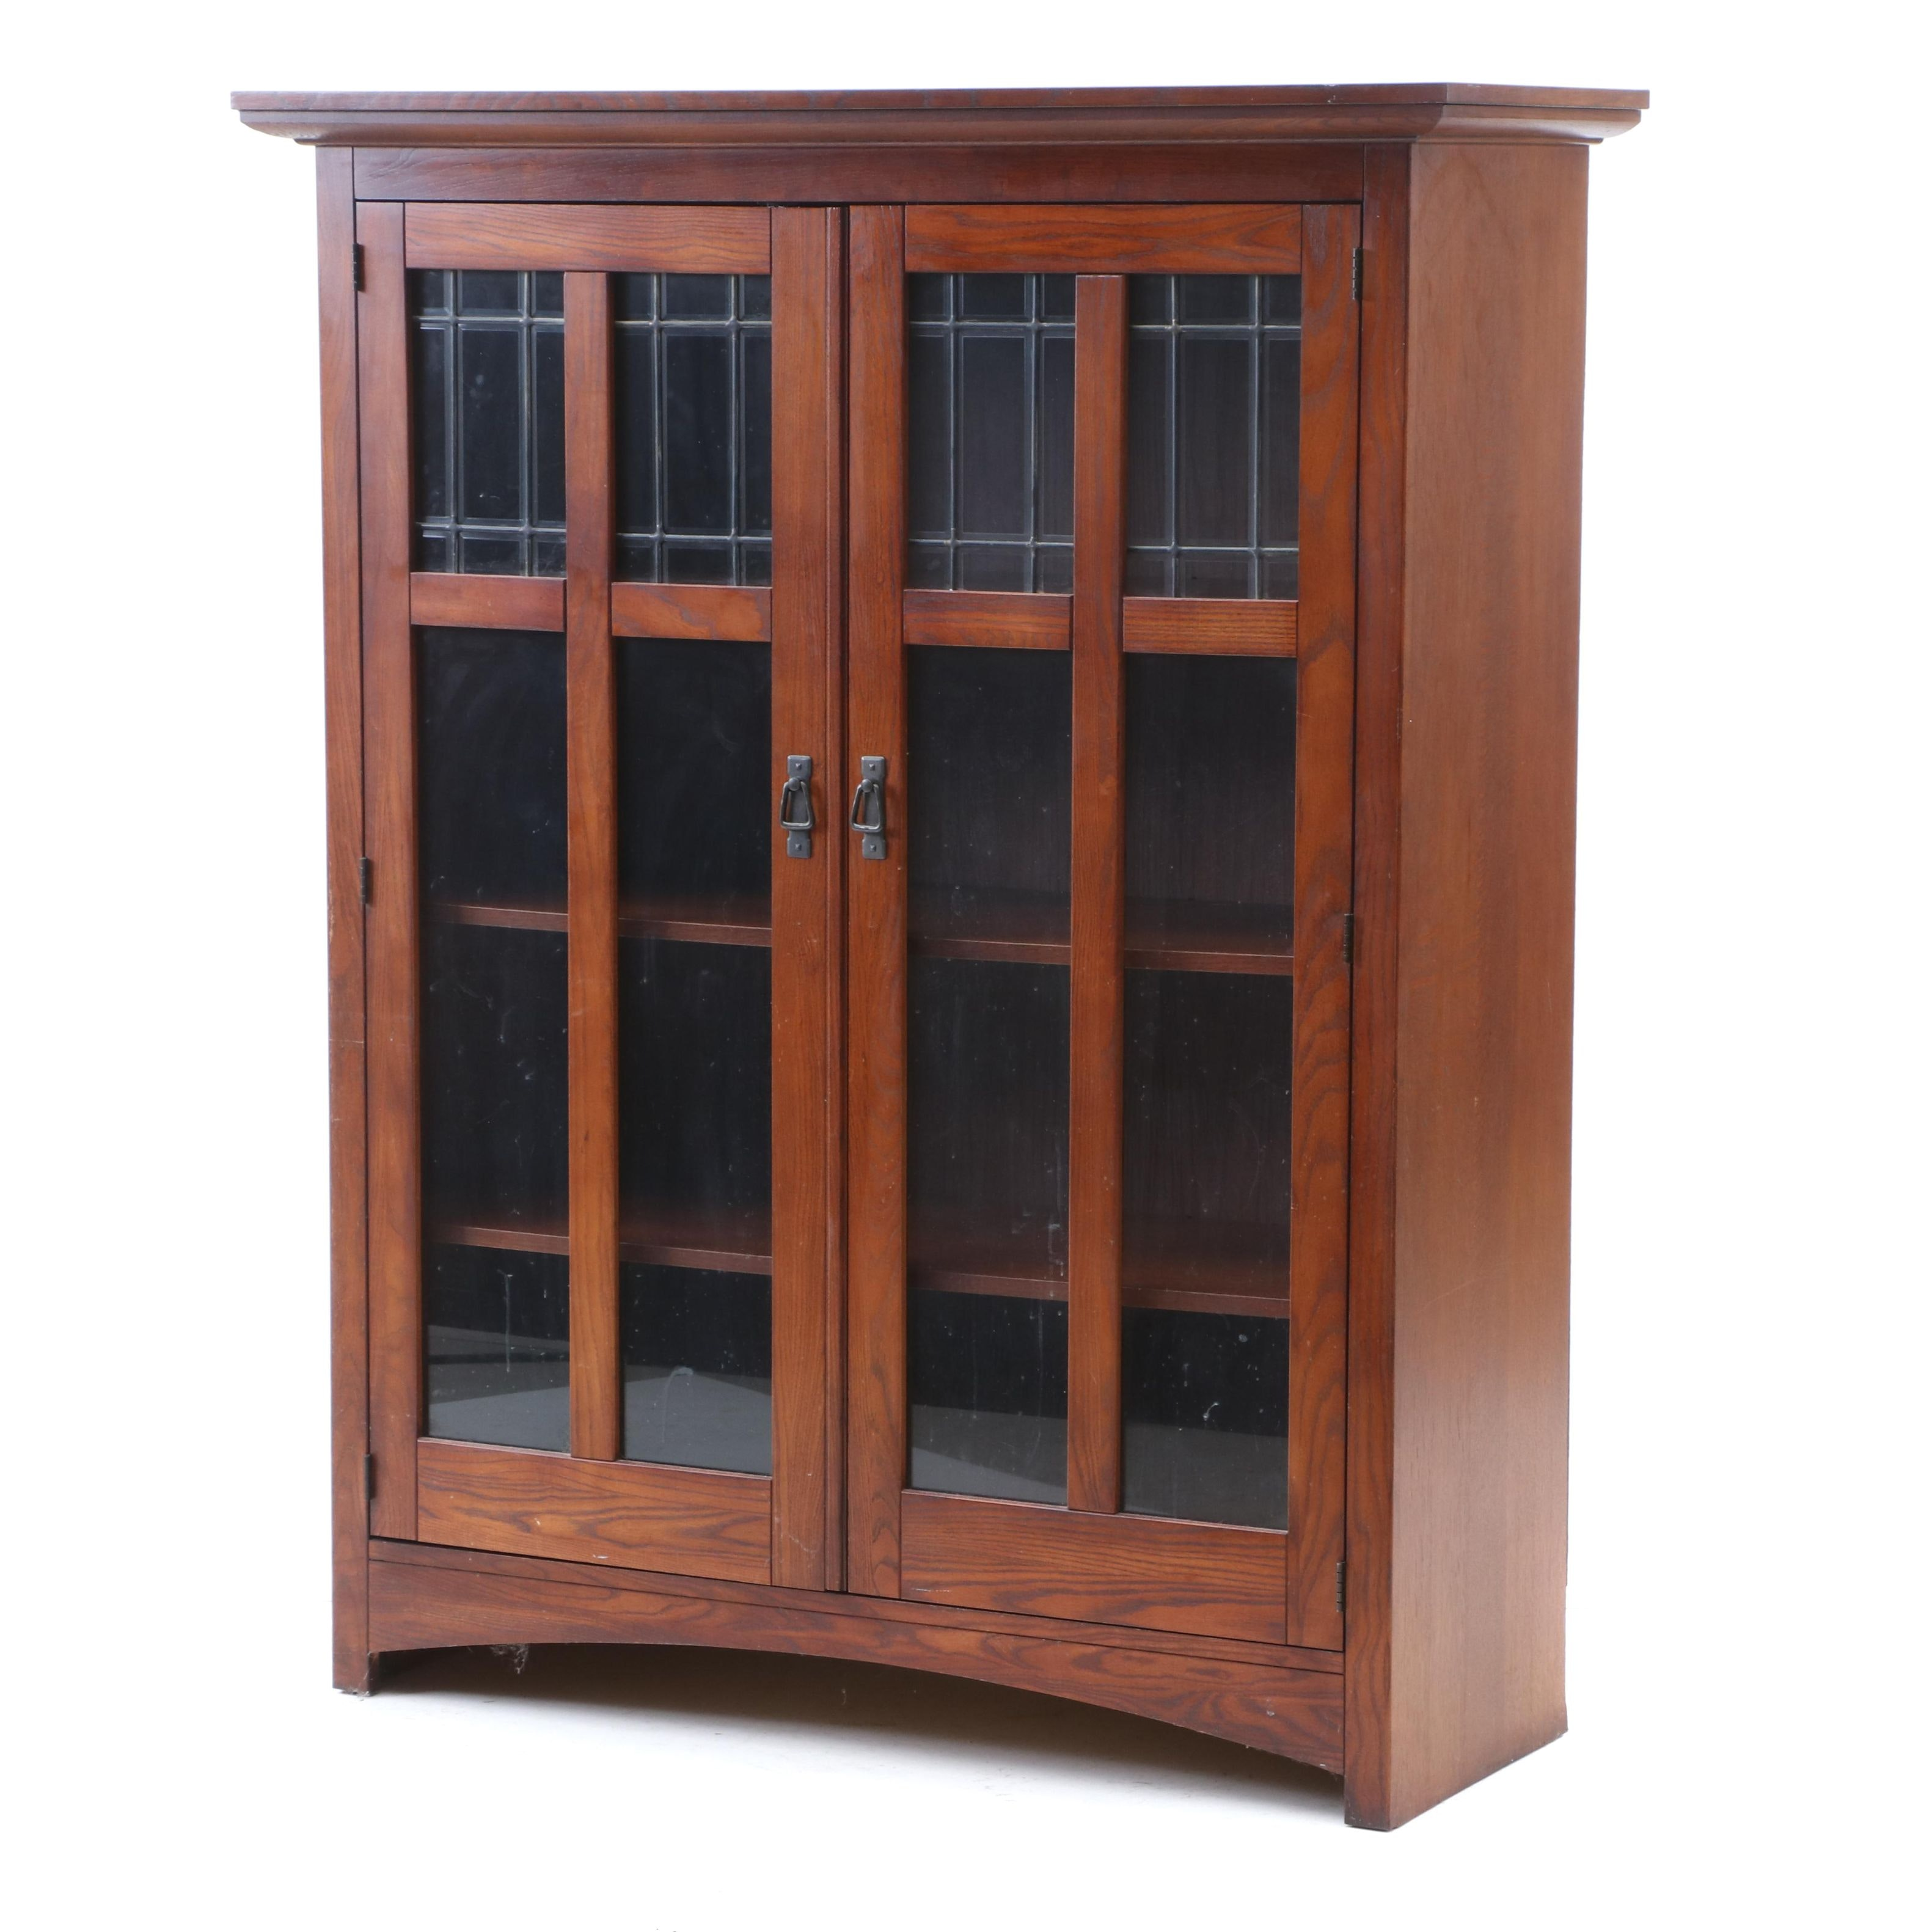 Art and Crafts Style Bookcase Cabinet by Bassett